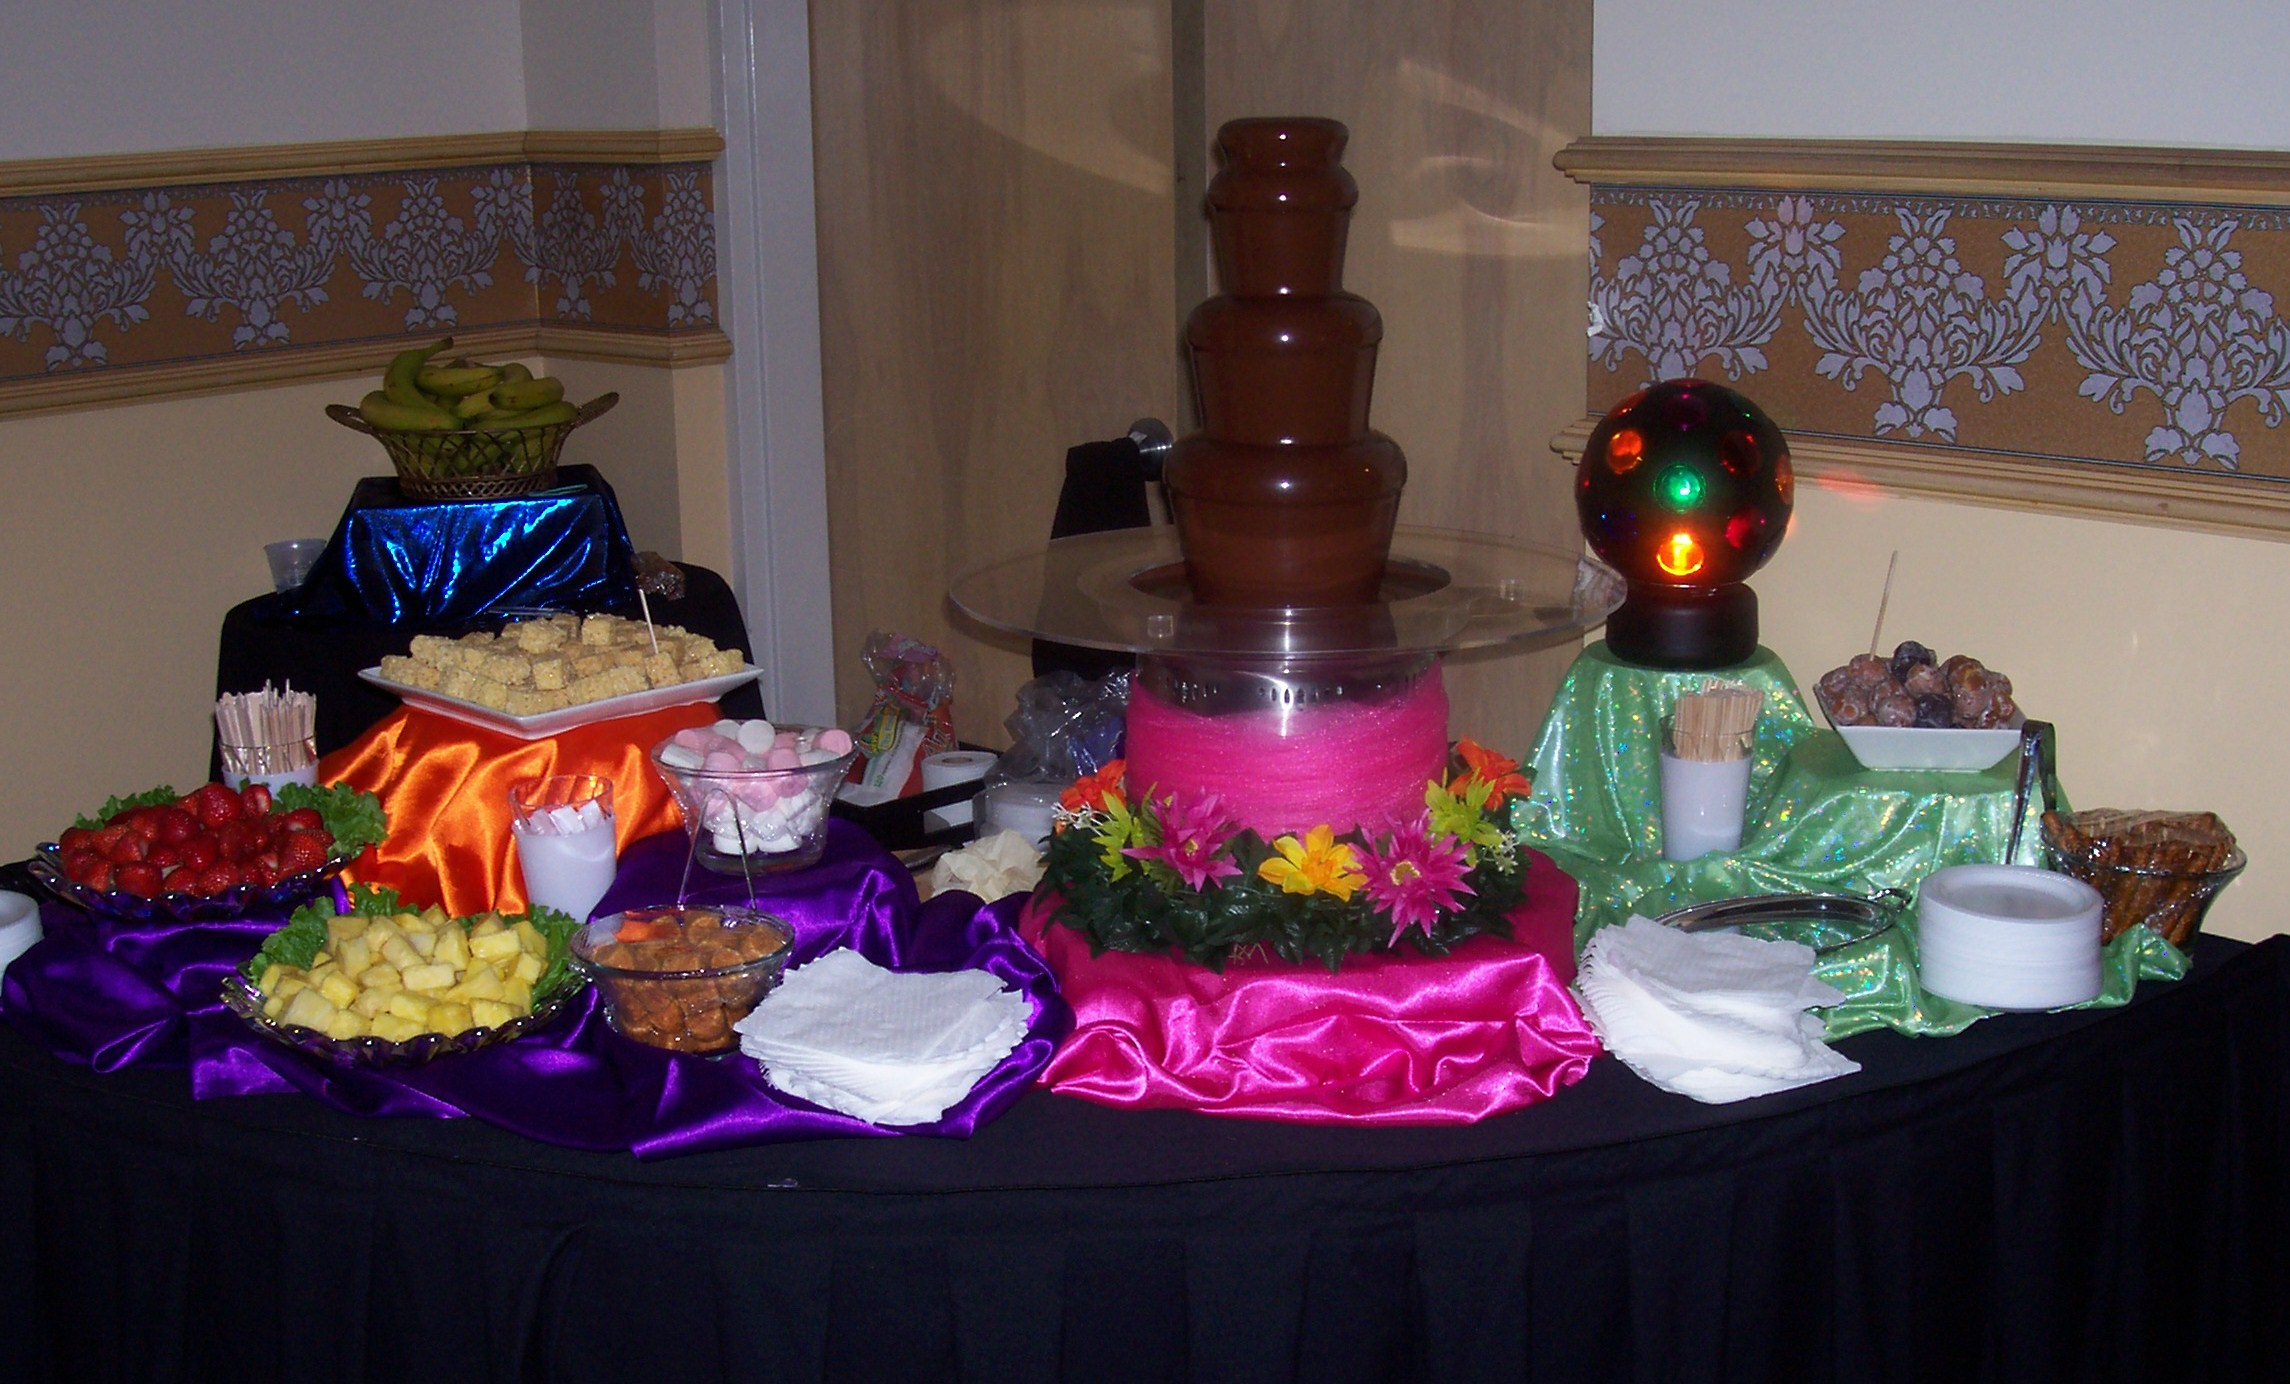 A chocolate fountain